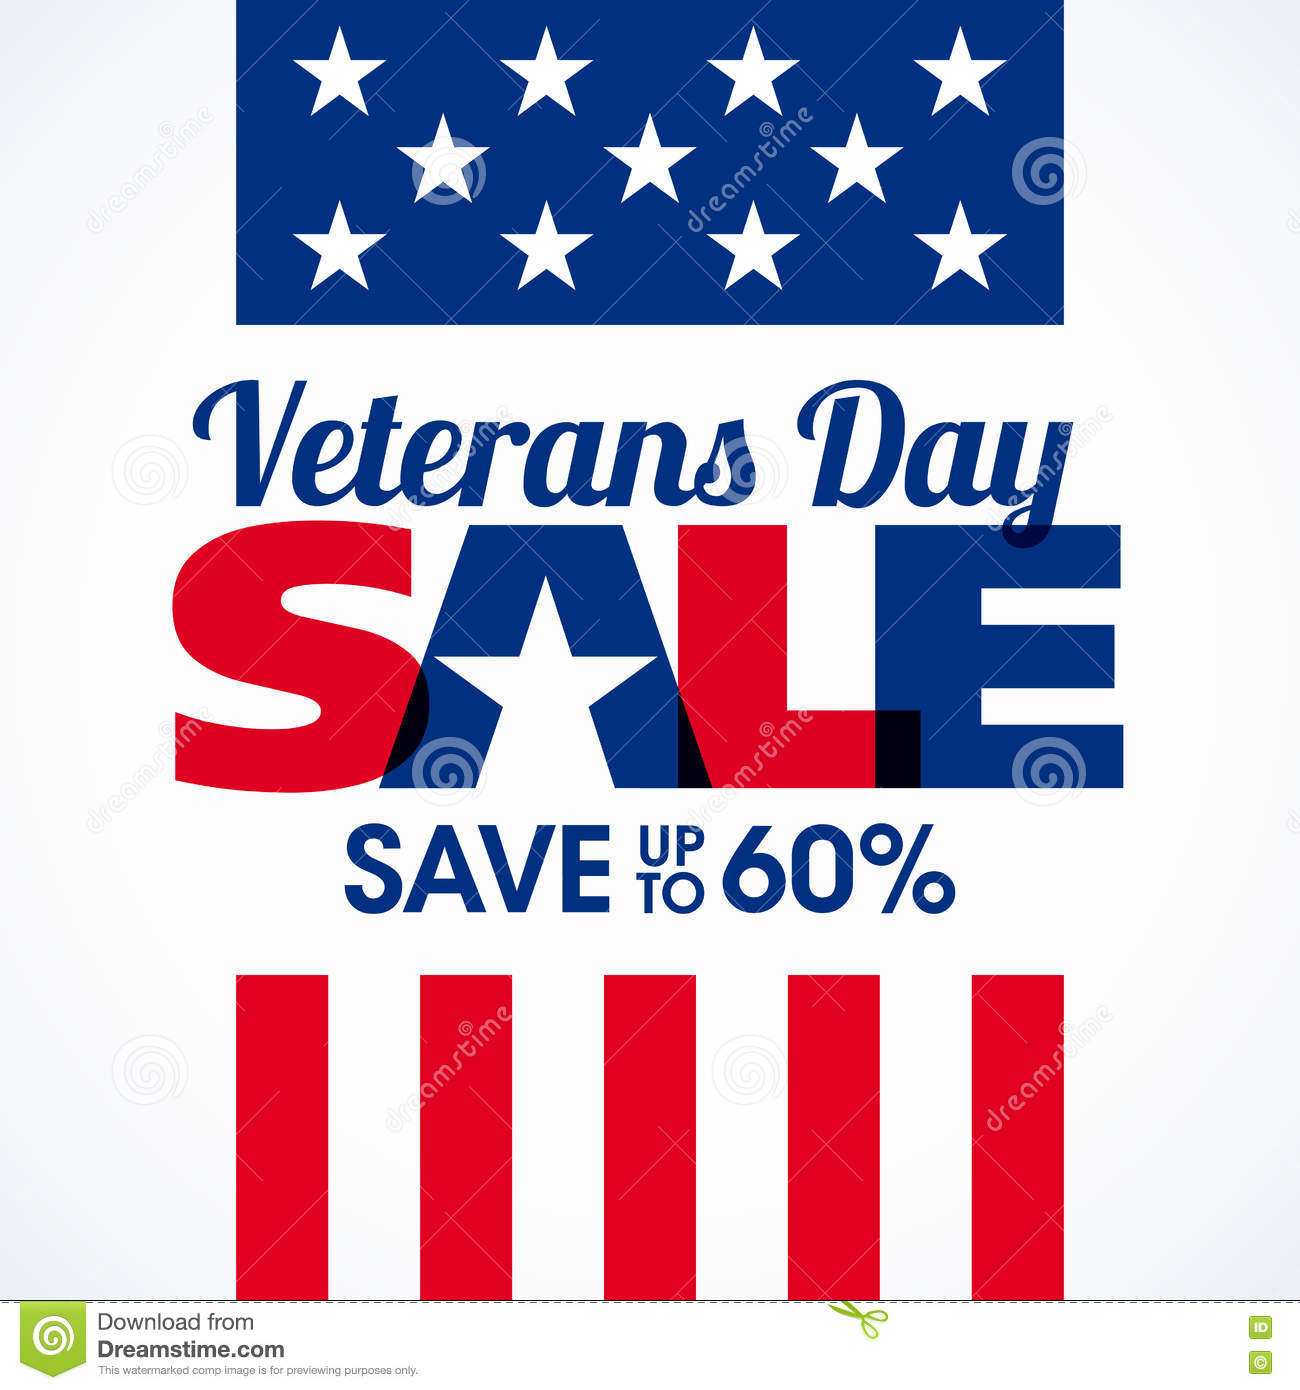 veterans day banner or poster template stock vector image veterans day banner or poster template